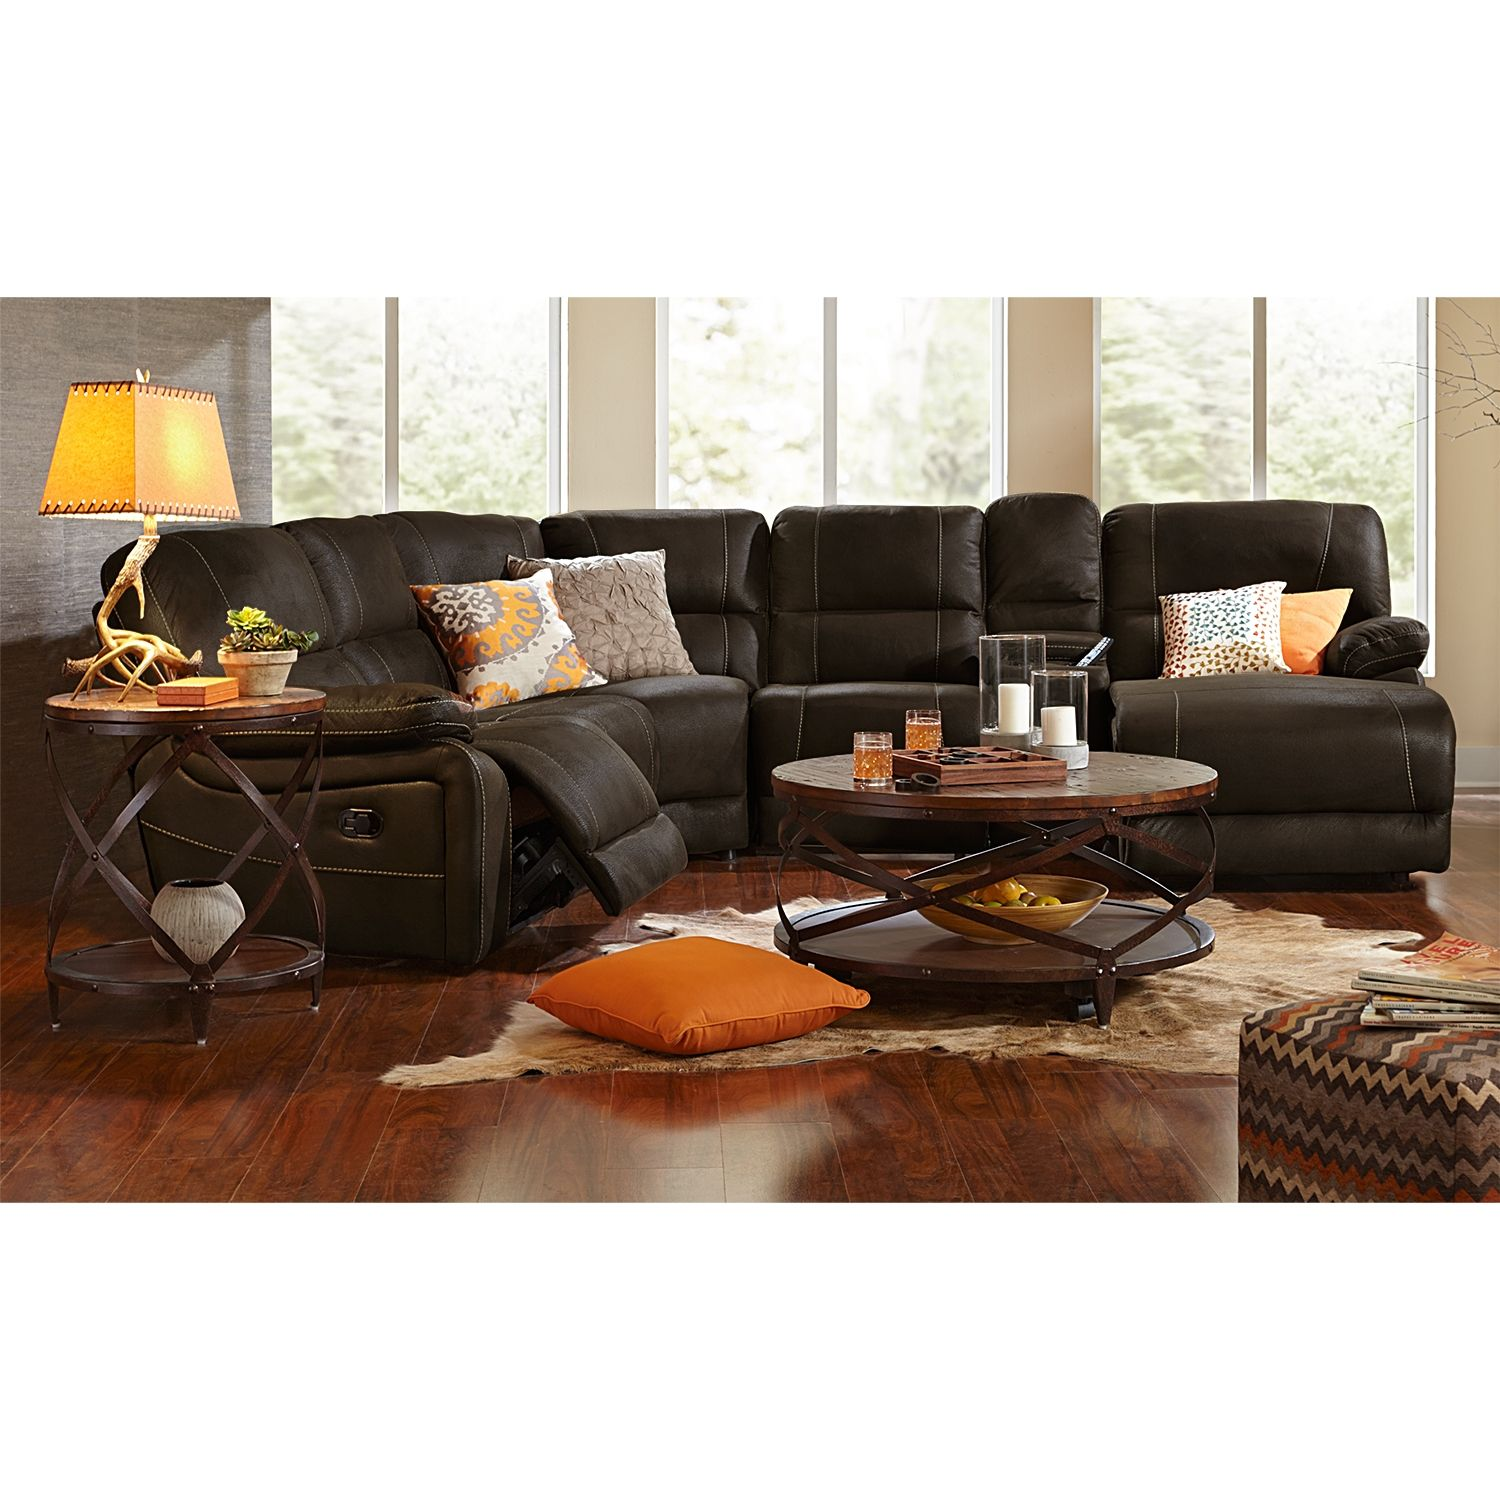 Home on the range relax on our wyoming saddle sectional and youull